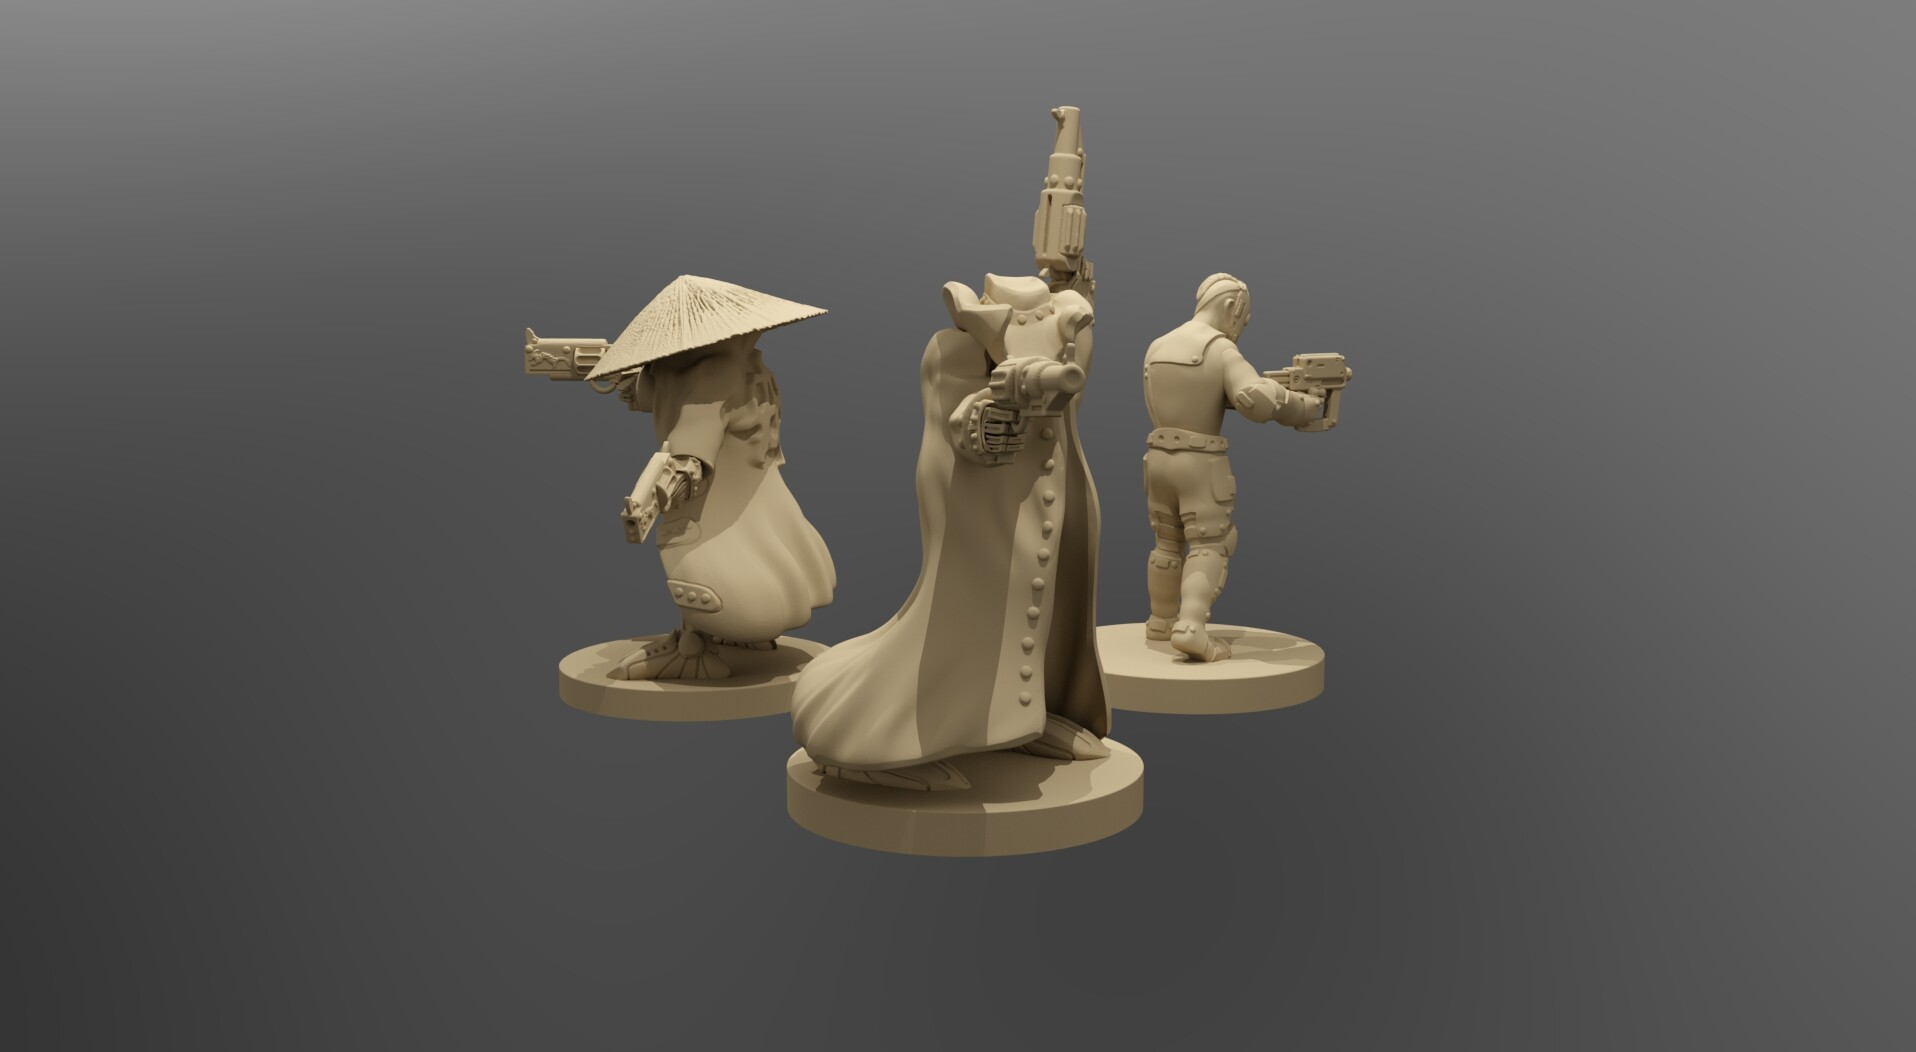 photograph regarding Printable Miniatures called ArtStation - Cyberpunk Outlaws 30mm Printable Miniatures